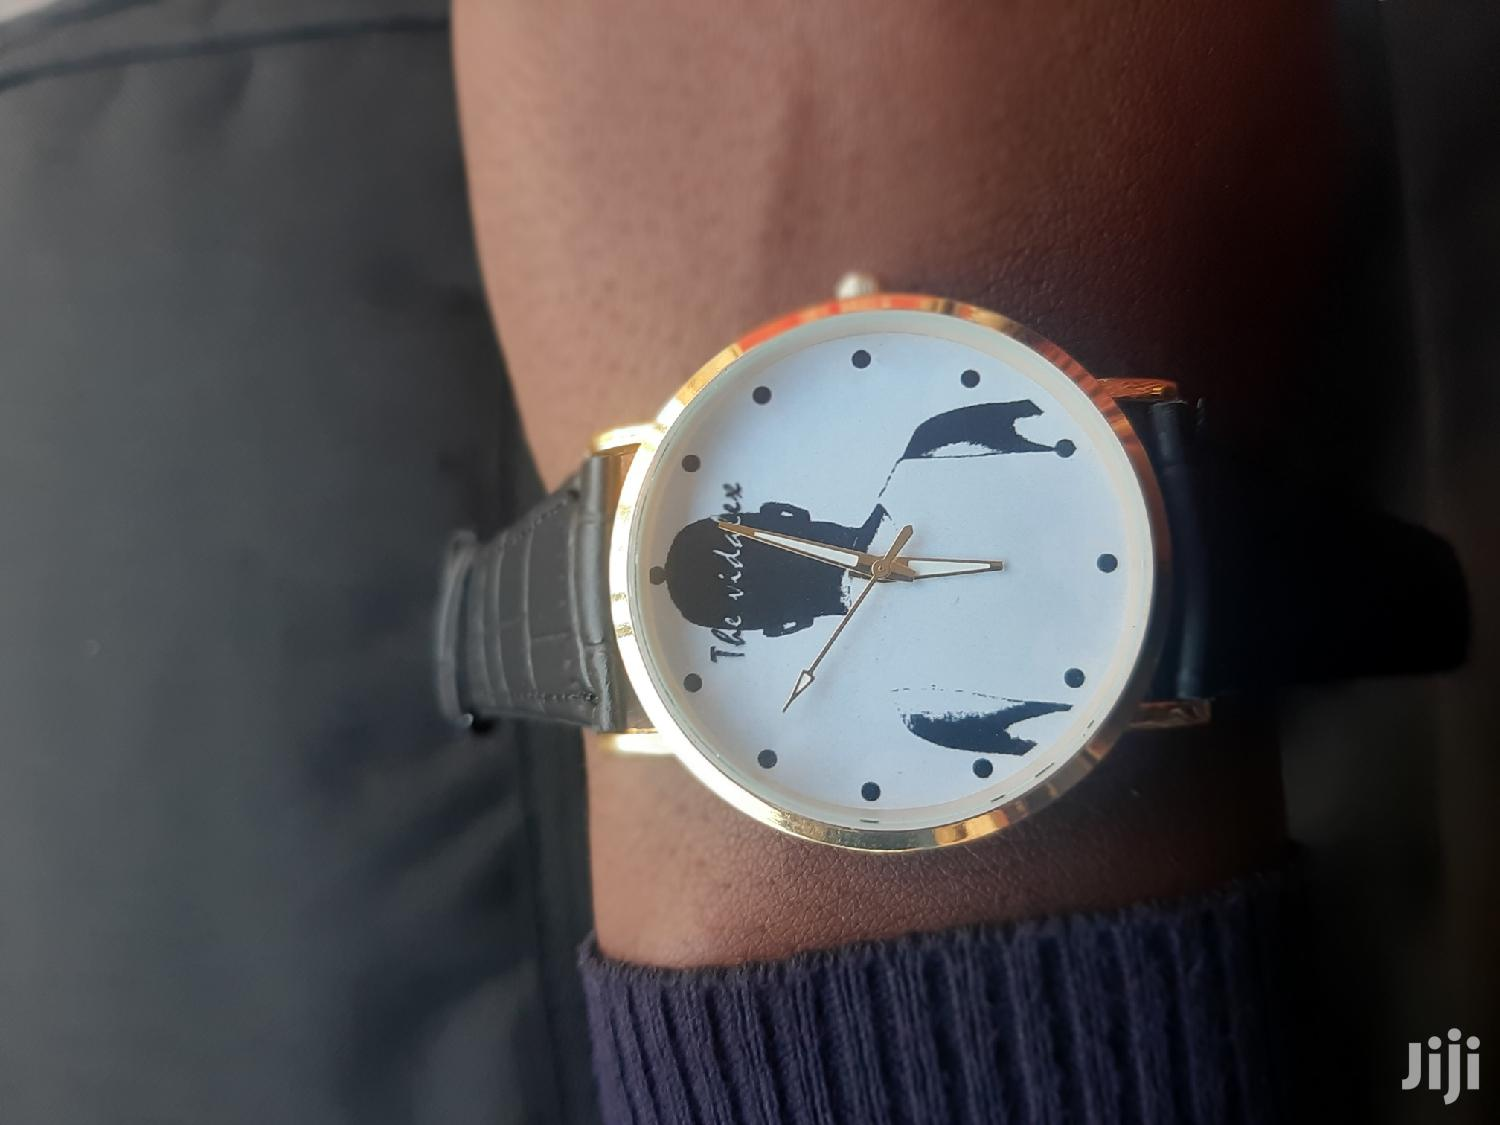 The_vidalexbrand Watches | Watches for sale in Kinondoni, Dar es Salaam, Tanzania